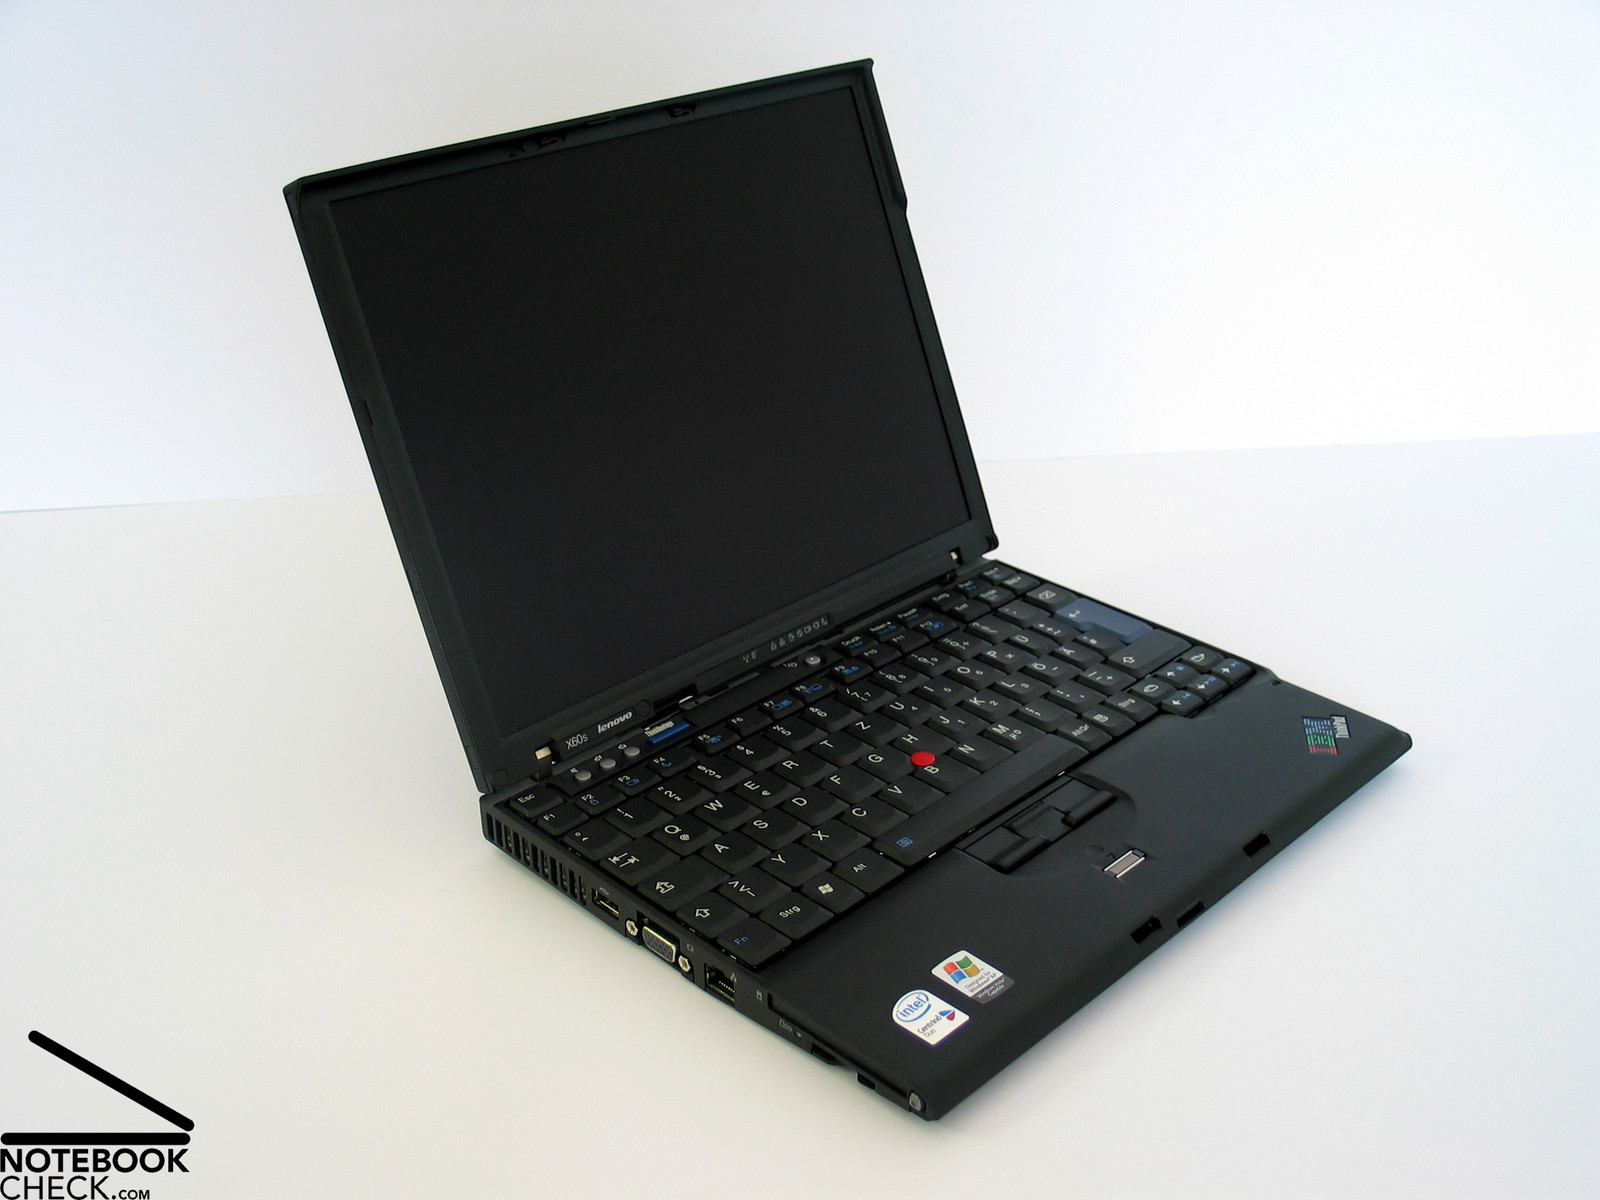 Lenovo ThinkPad X60s External Reviews